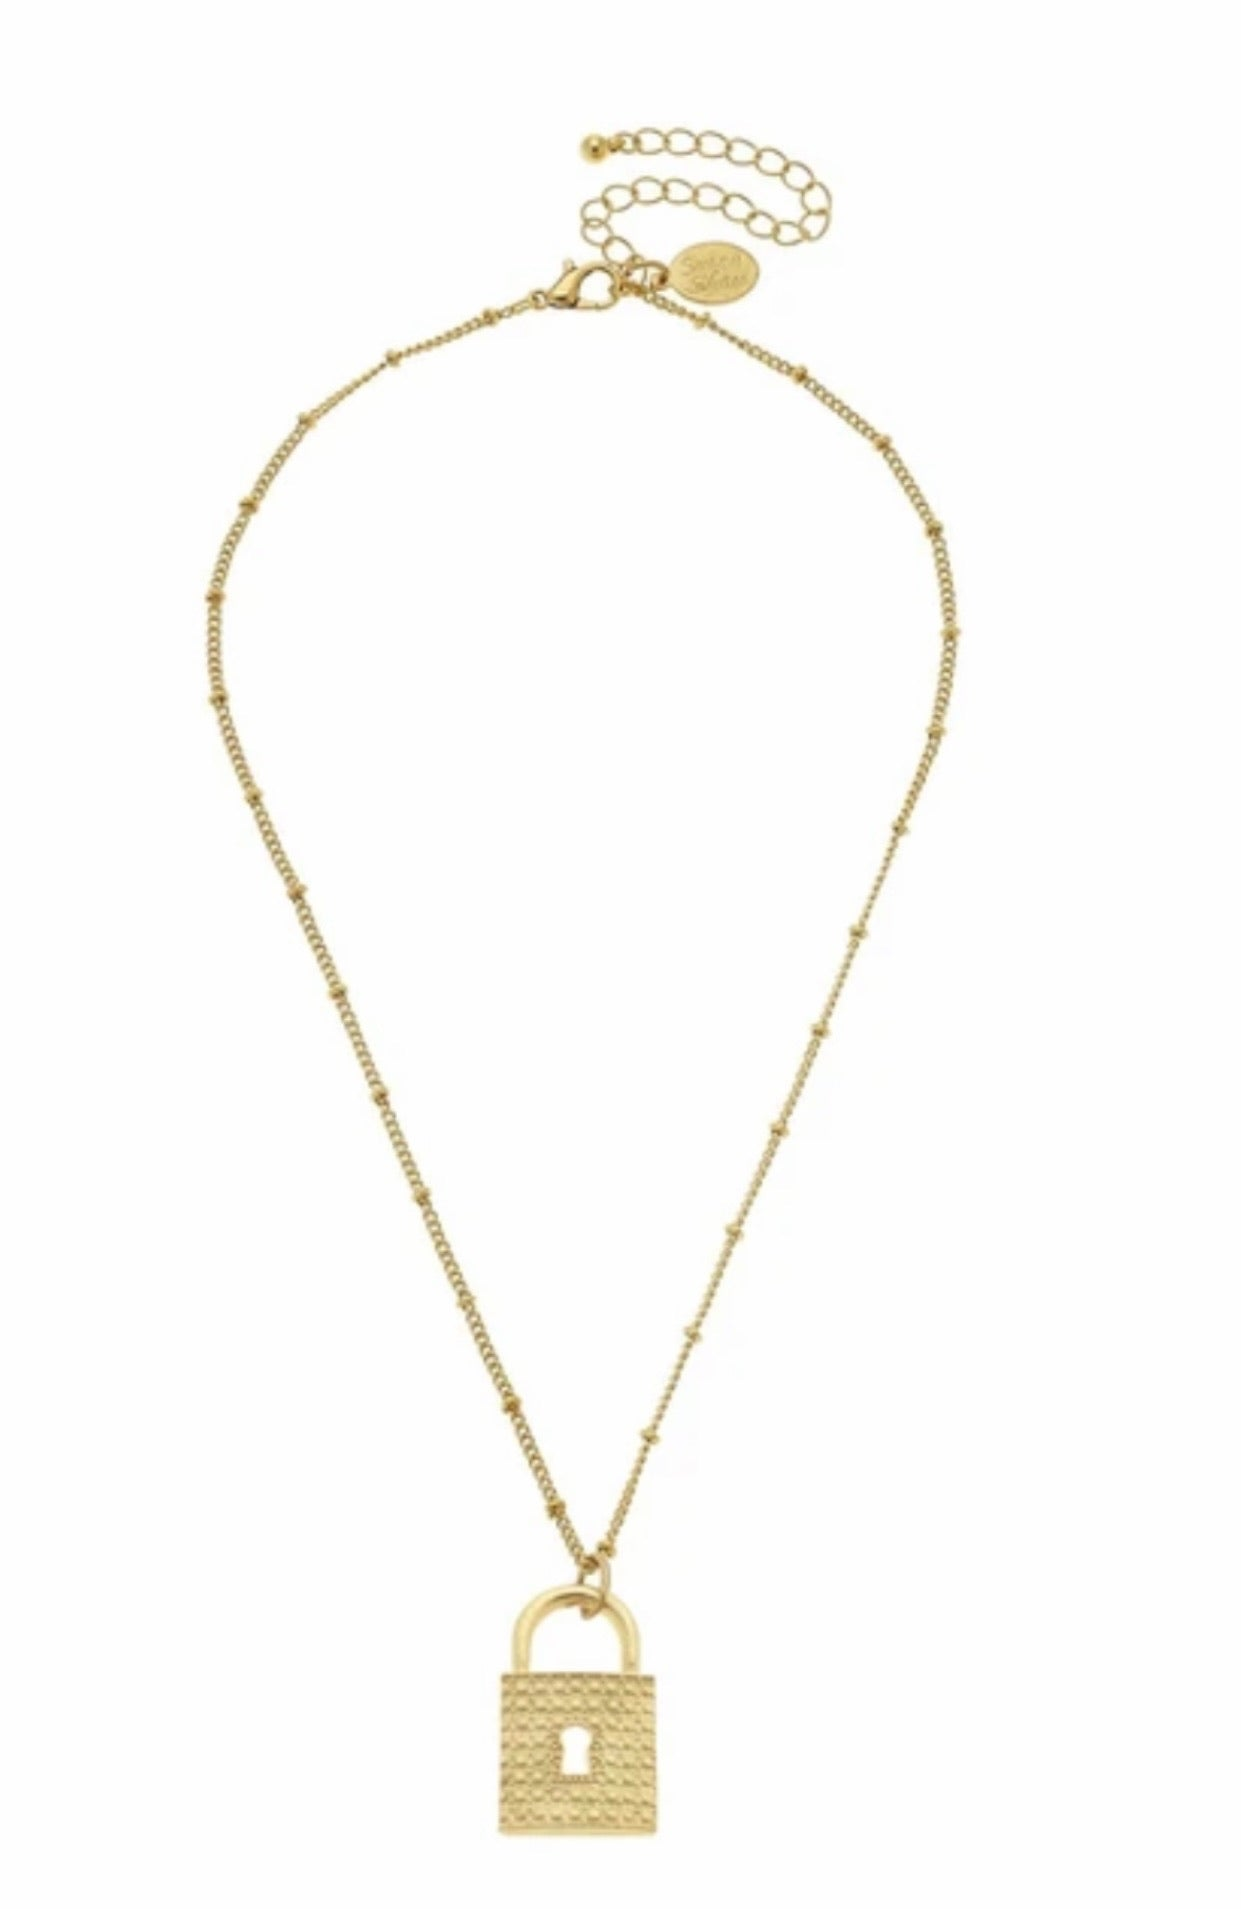 "Susan Shaw Triple Plated 24kt Gold Keepsake Classic Lock 16"" Necklace"